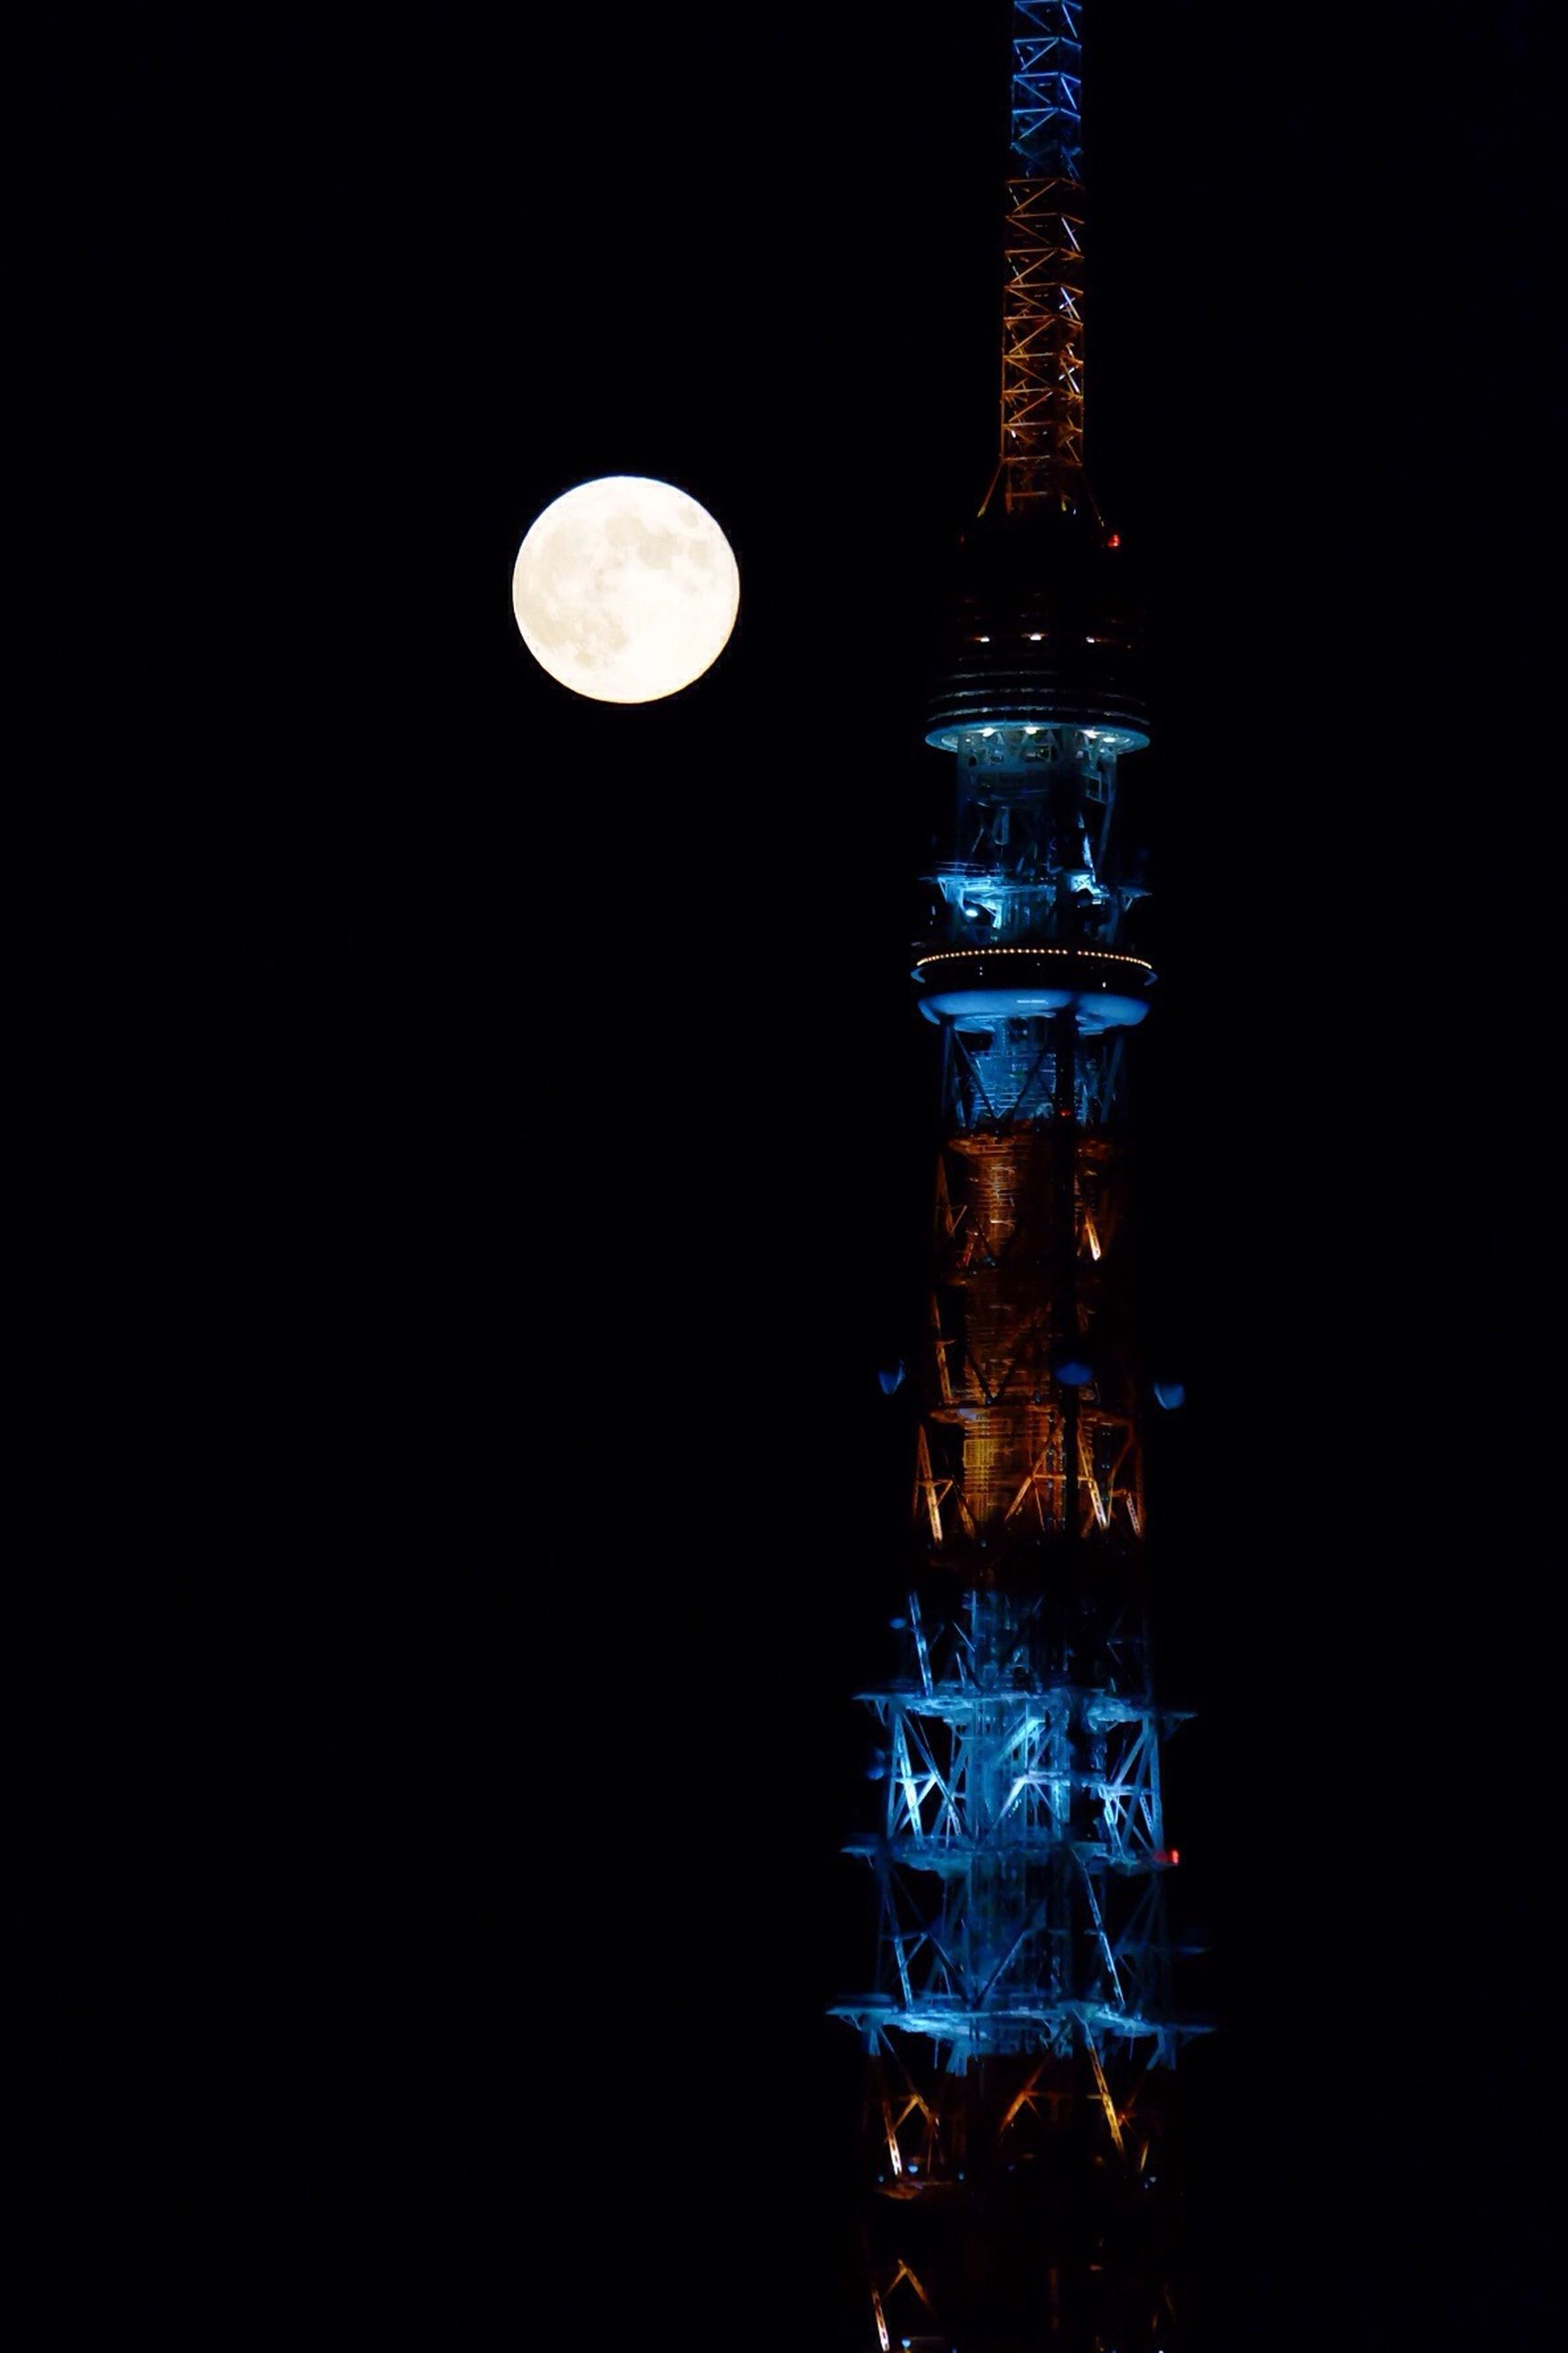 night, illuminated, low angle view, built structure, architecture, dark, copy space, sphere, building exterior, lighting equipment, city, clear sky, moon, sky, glowing, tower, no people, full moon, electricity, light - natural phenomenon